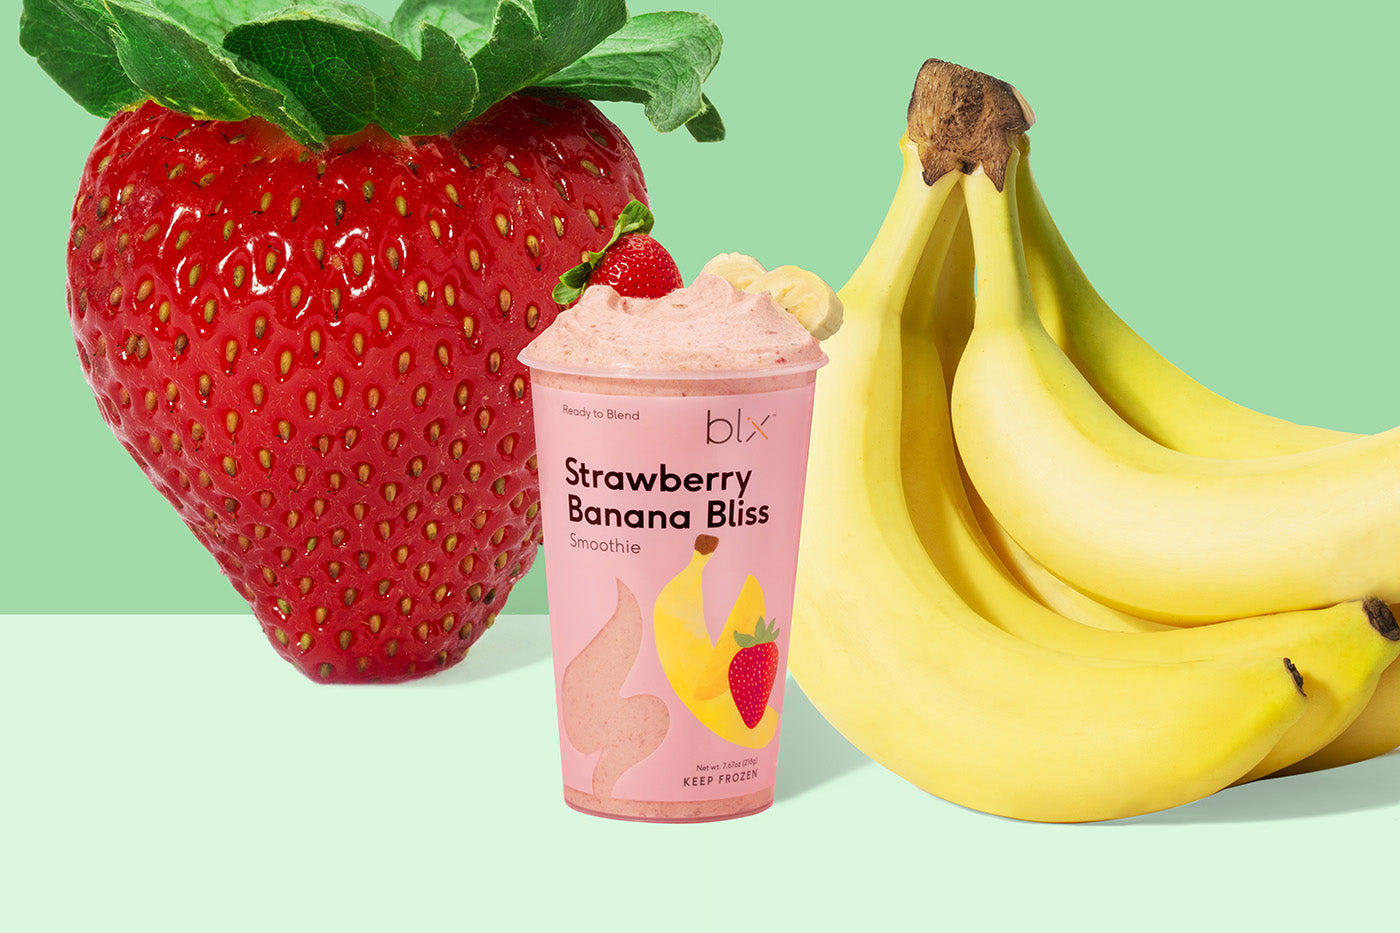 Strawberry Banana Bliss